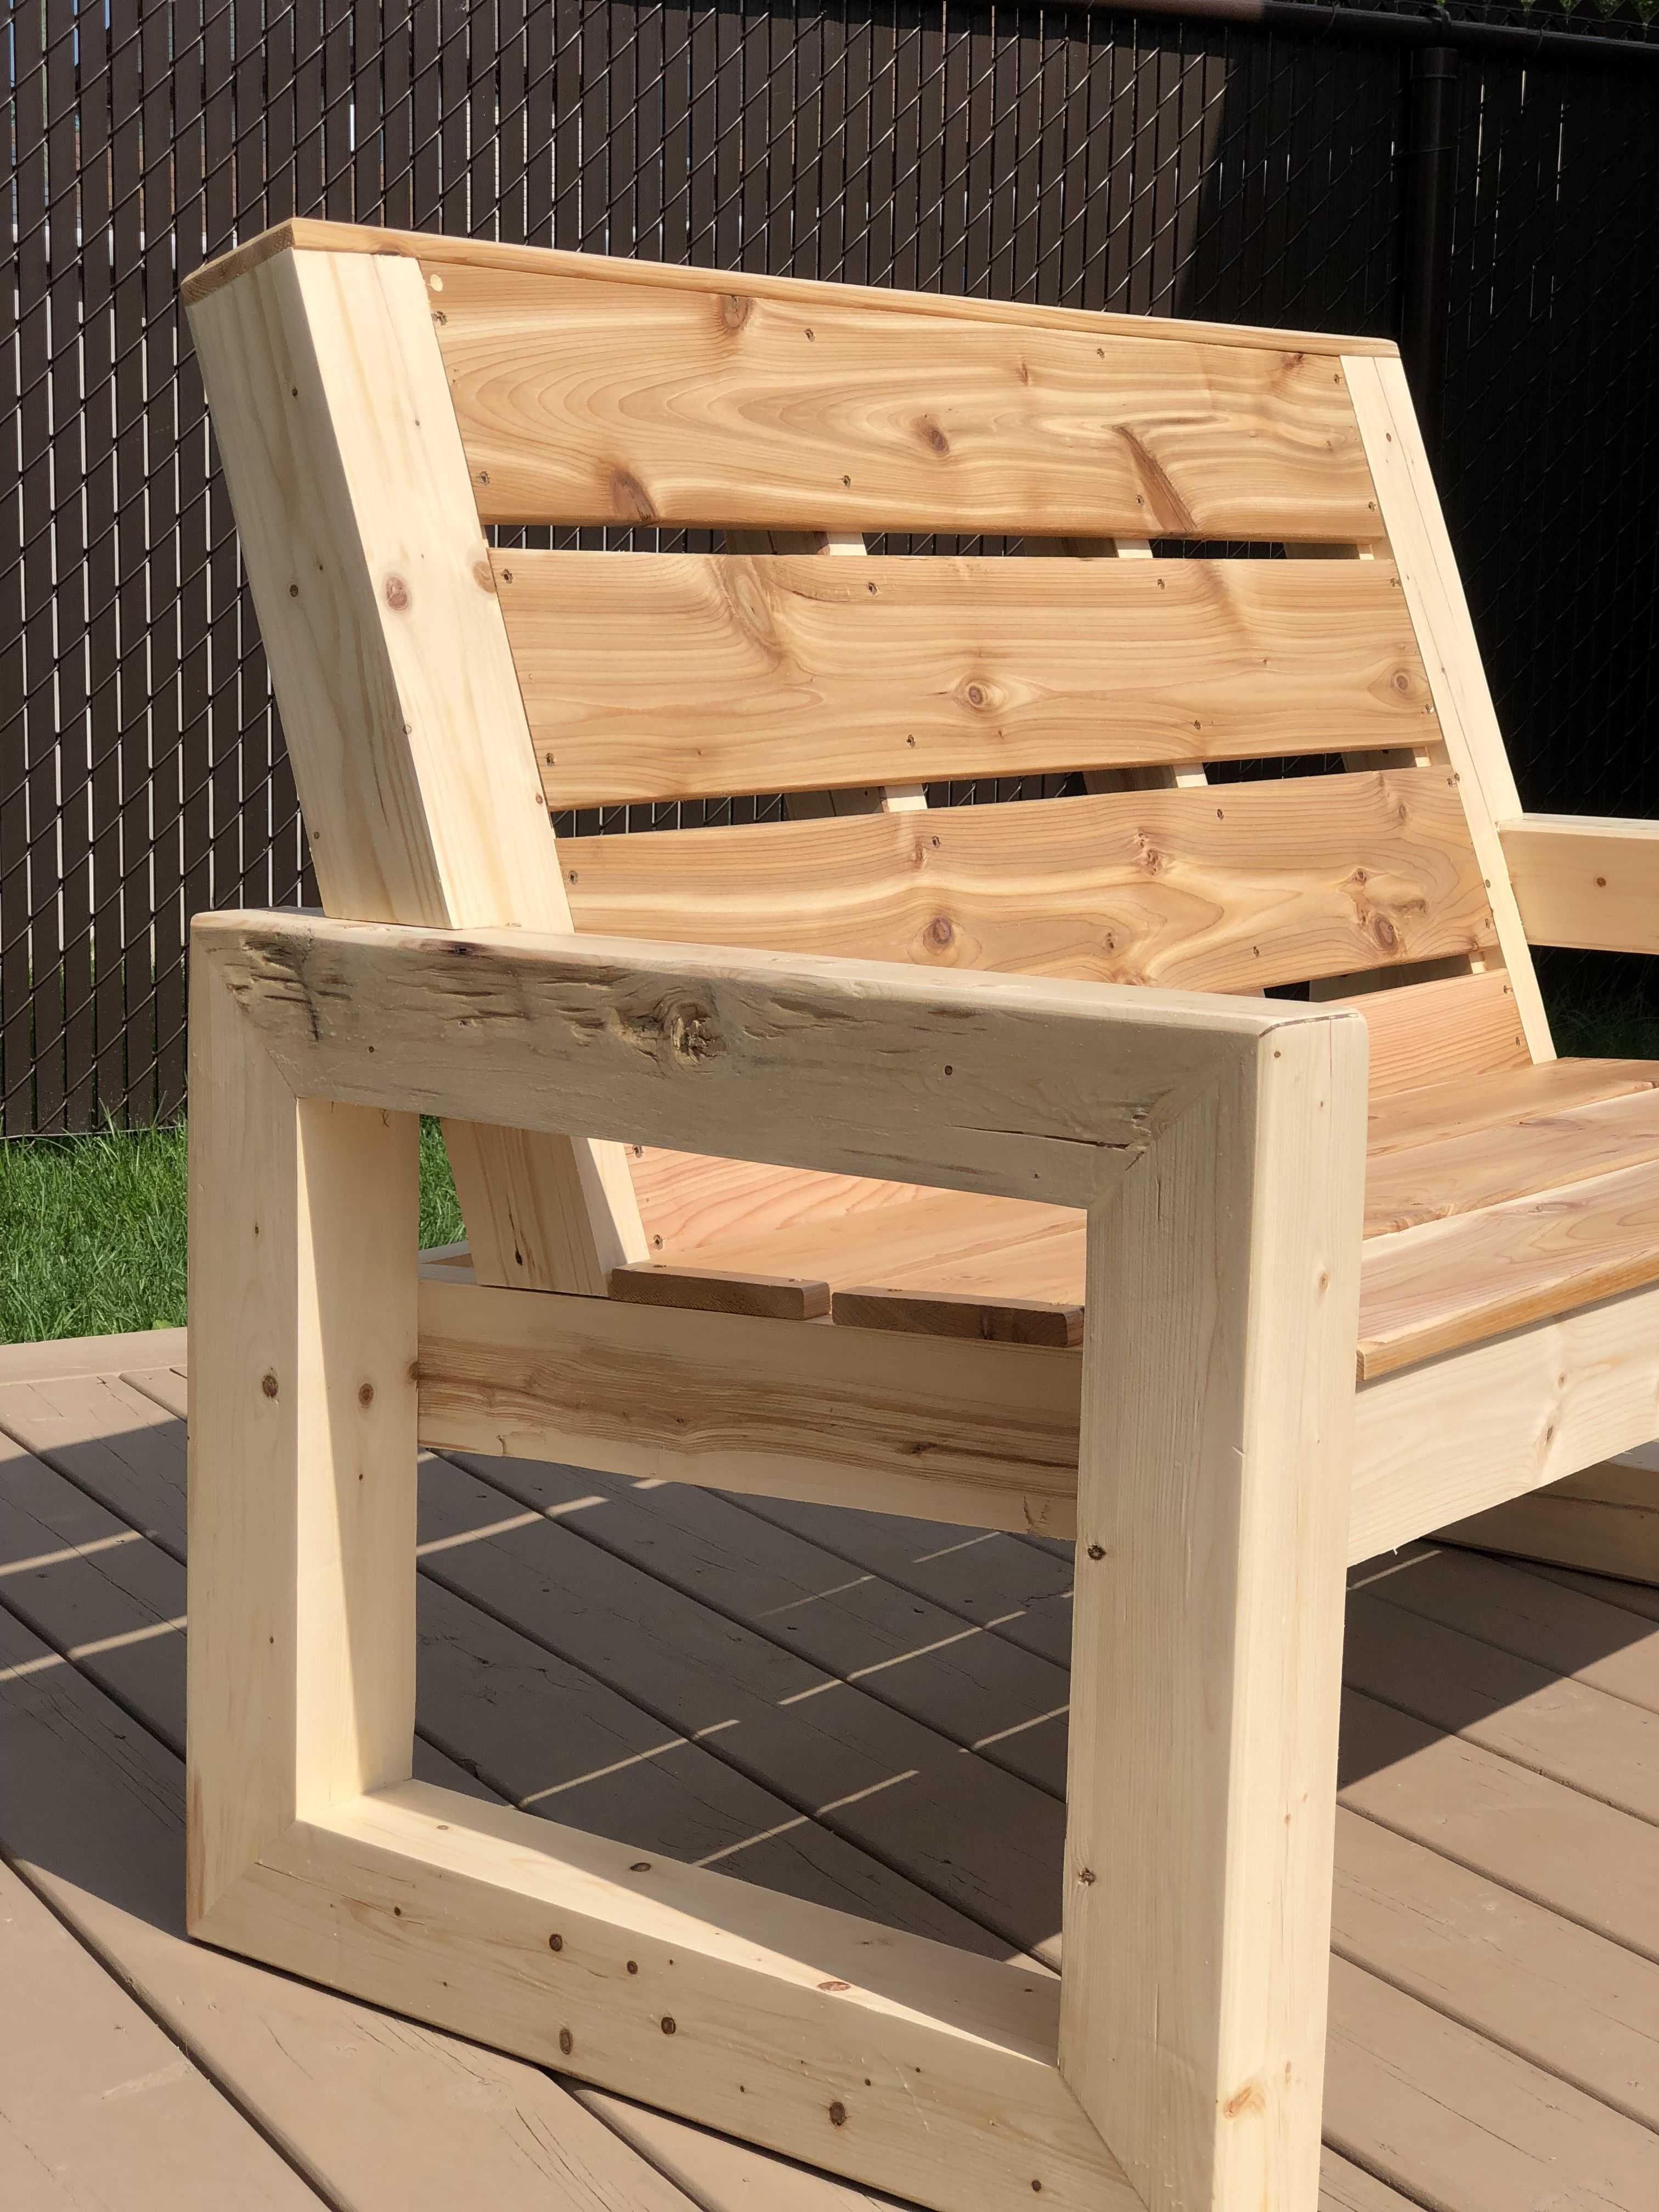 Pin By Dustin Wilson On Build To Sell Wood Furniture